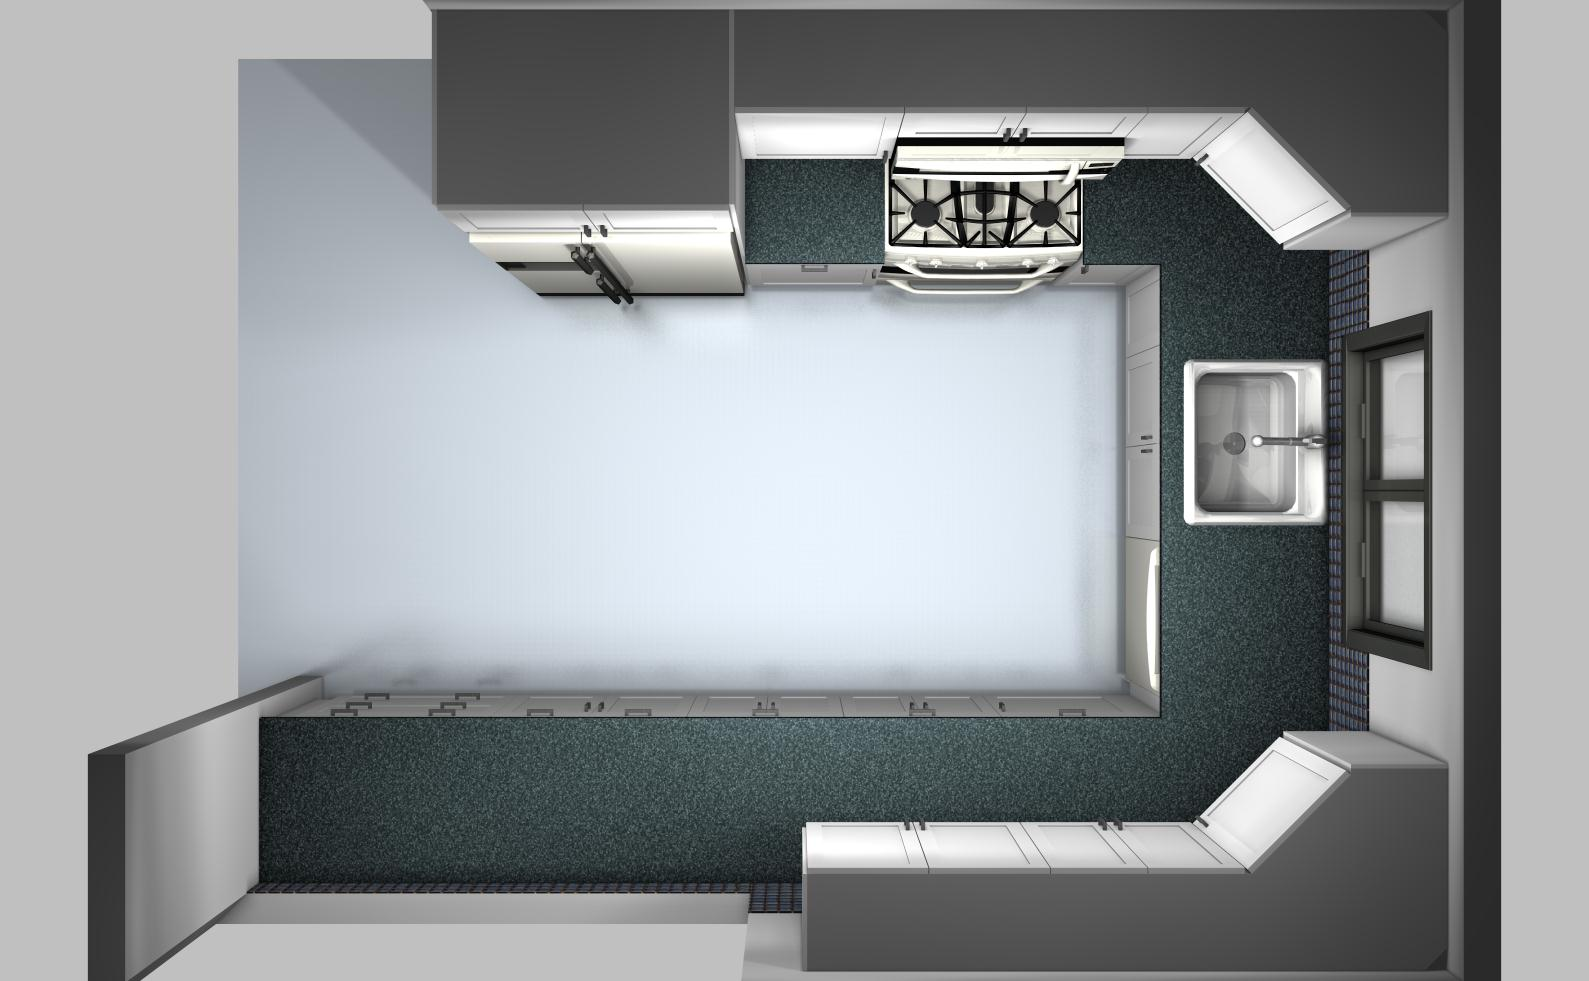 Top view ikea kitchen design for View kitchen designs